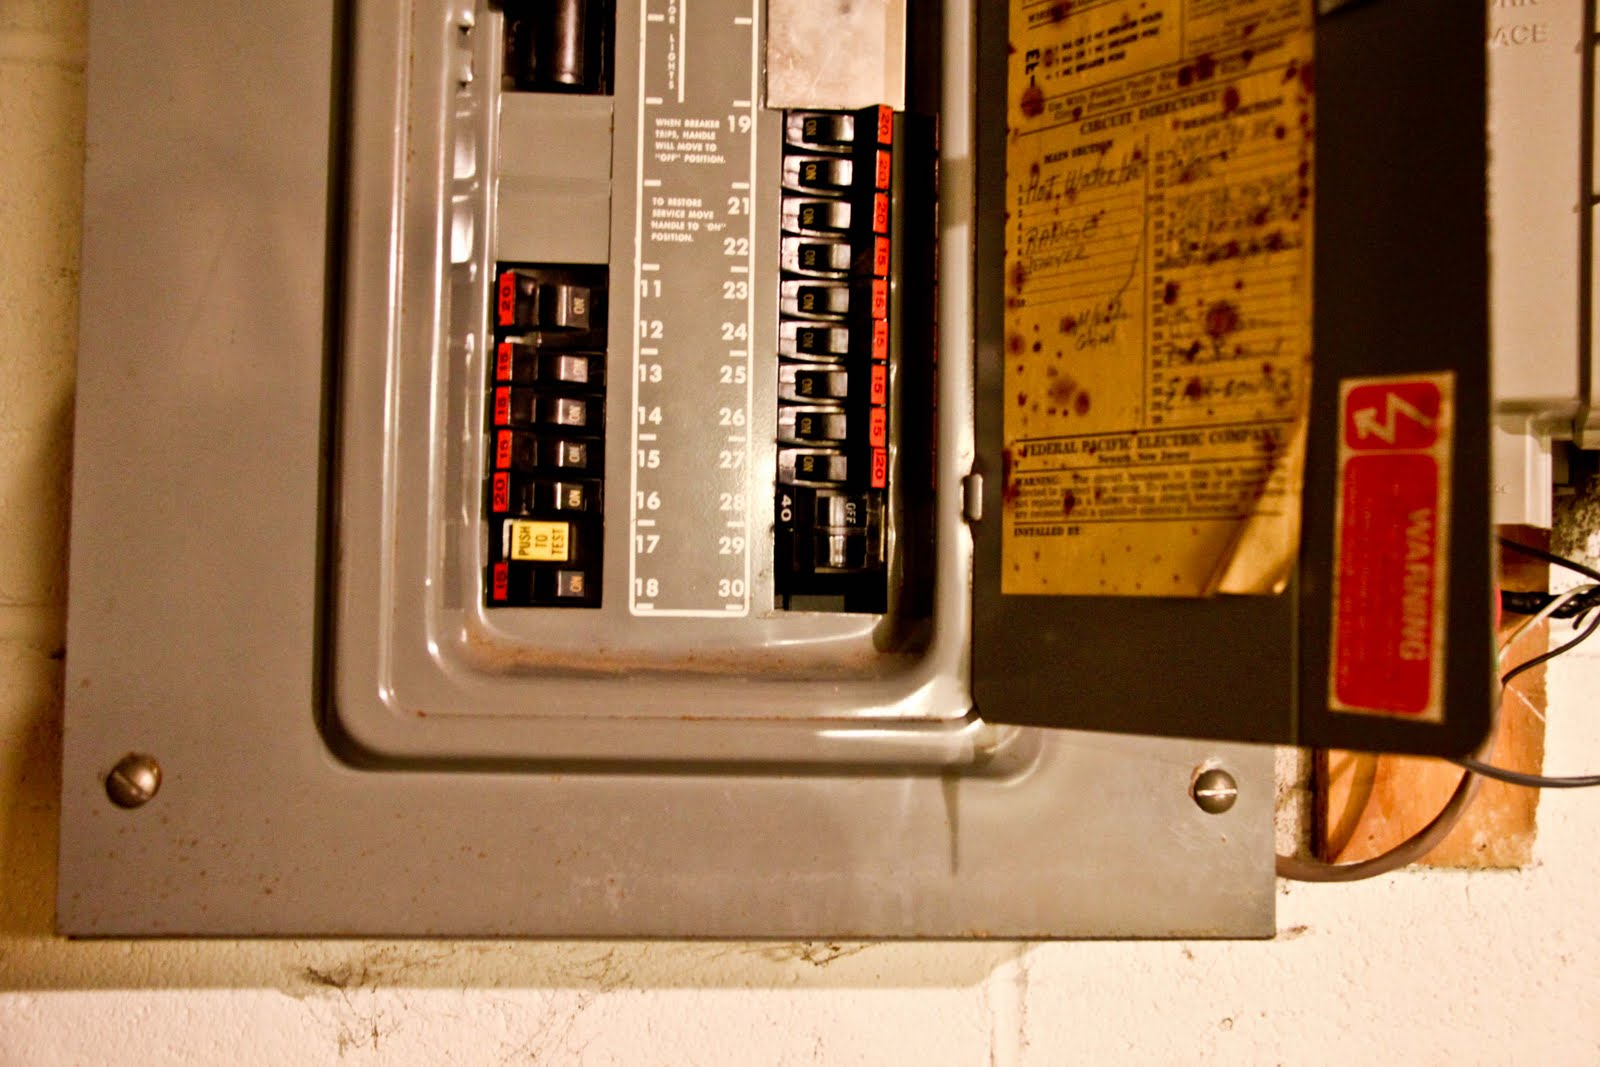 IMG_4614 replacing fuse on central ac unit work space how to reset fuse box in house at virtualis.co